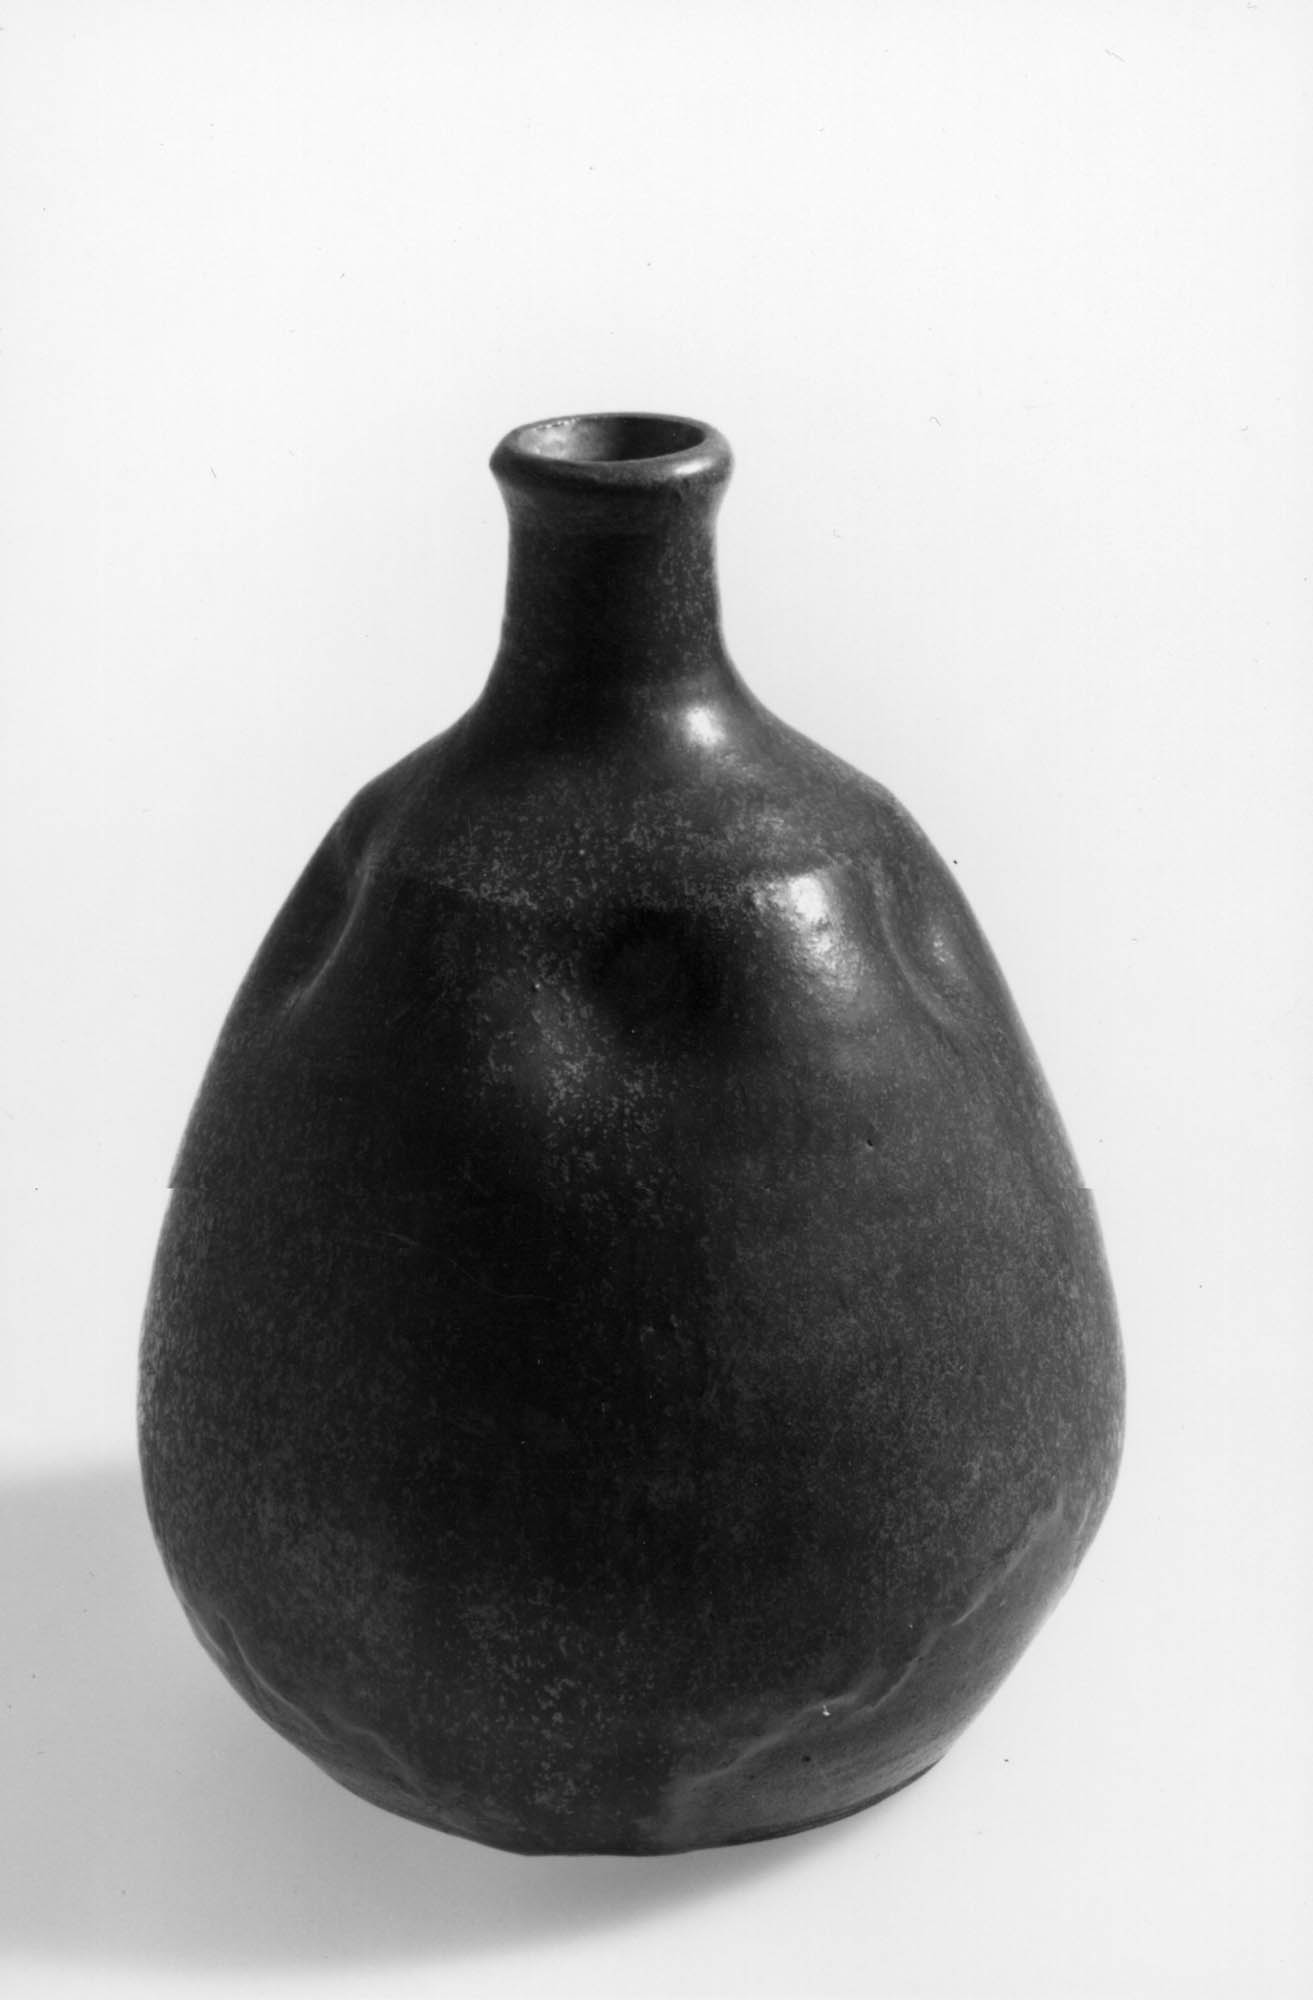 (untitled) Alfred William Finch Four-handled vase